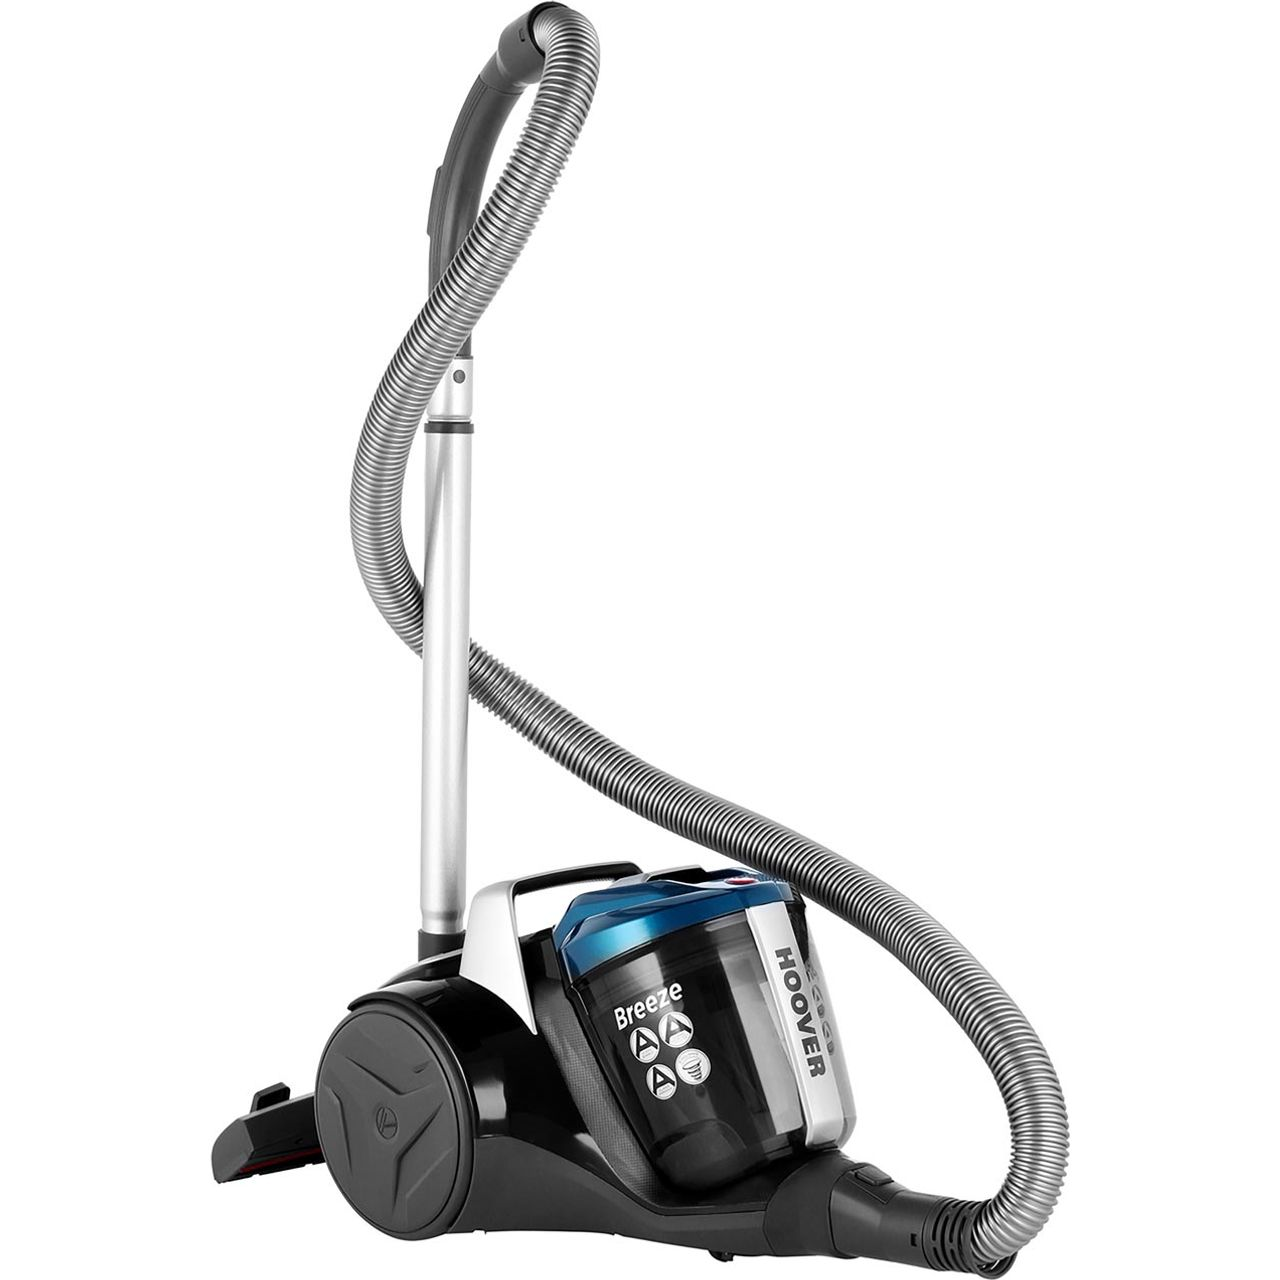 Hoover Breeze BR71BR01 Bagless Cylinder Vacuum Cleaner review